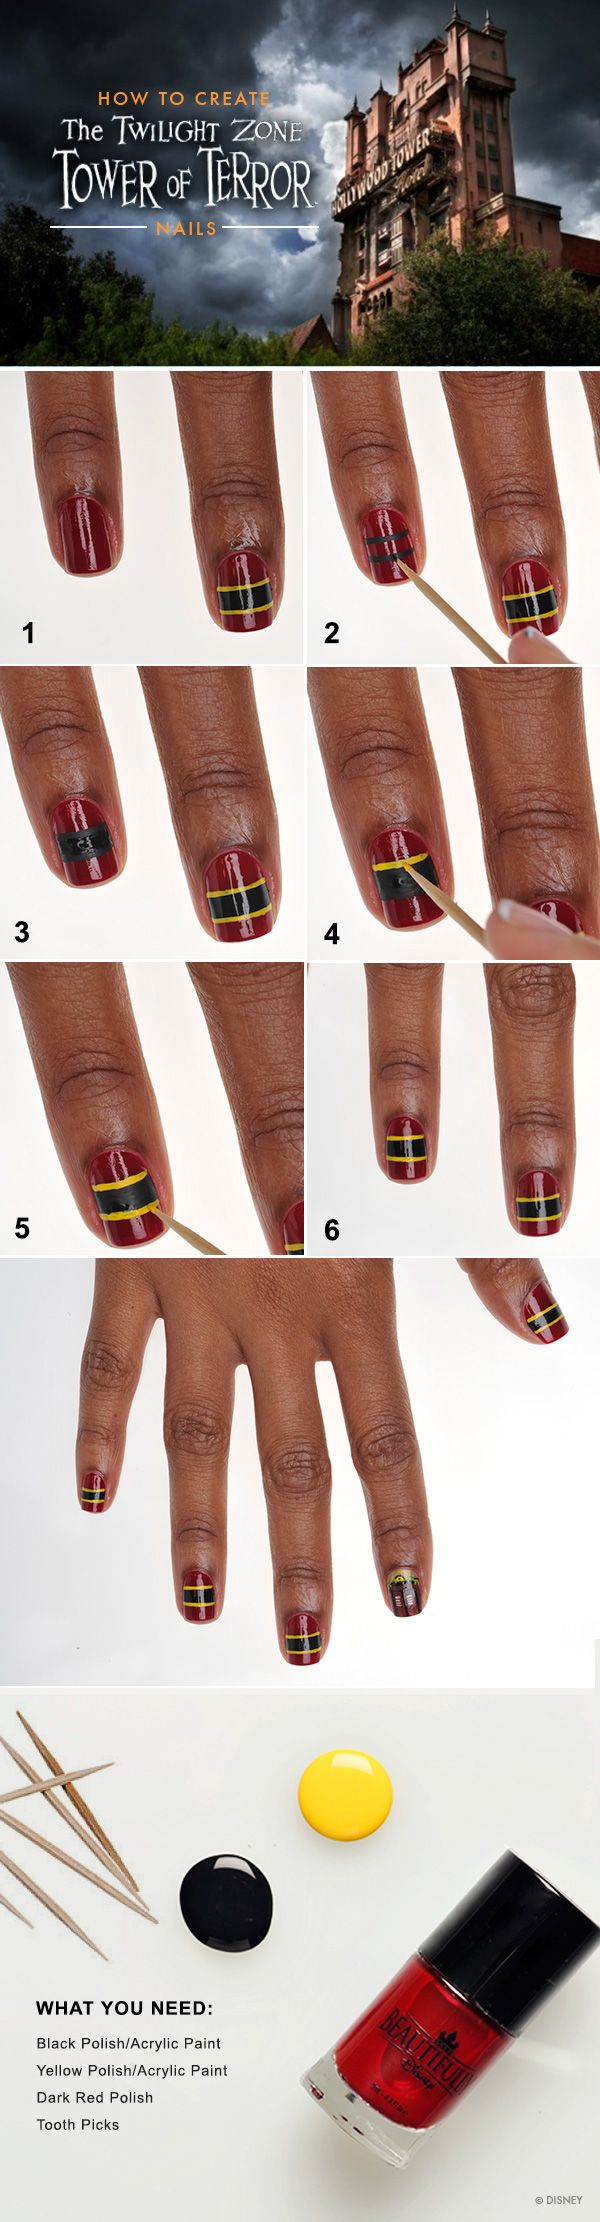 38 best disney nails images on Pinterest | Disney nail designs ...